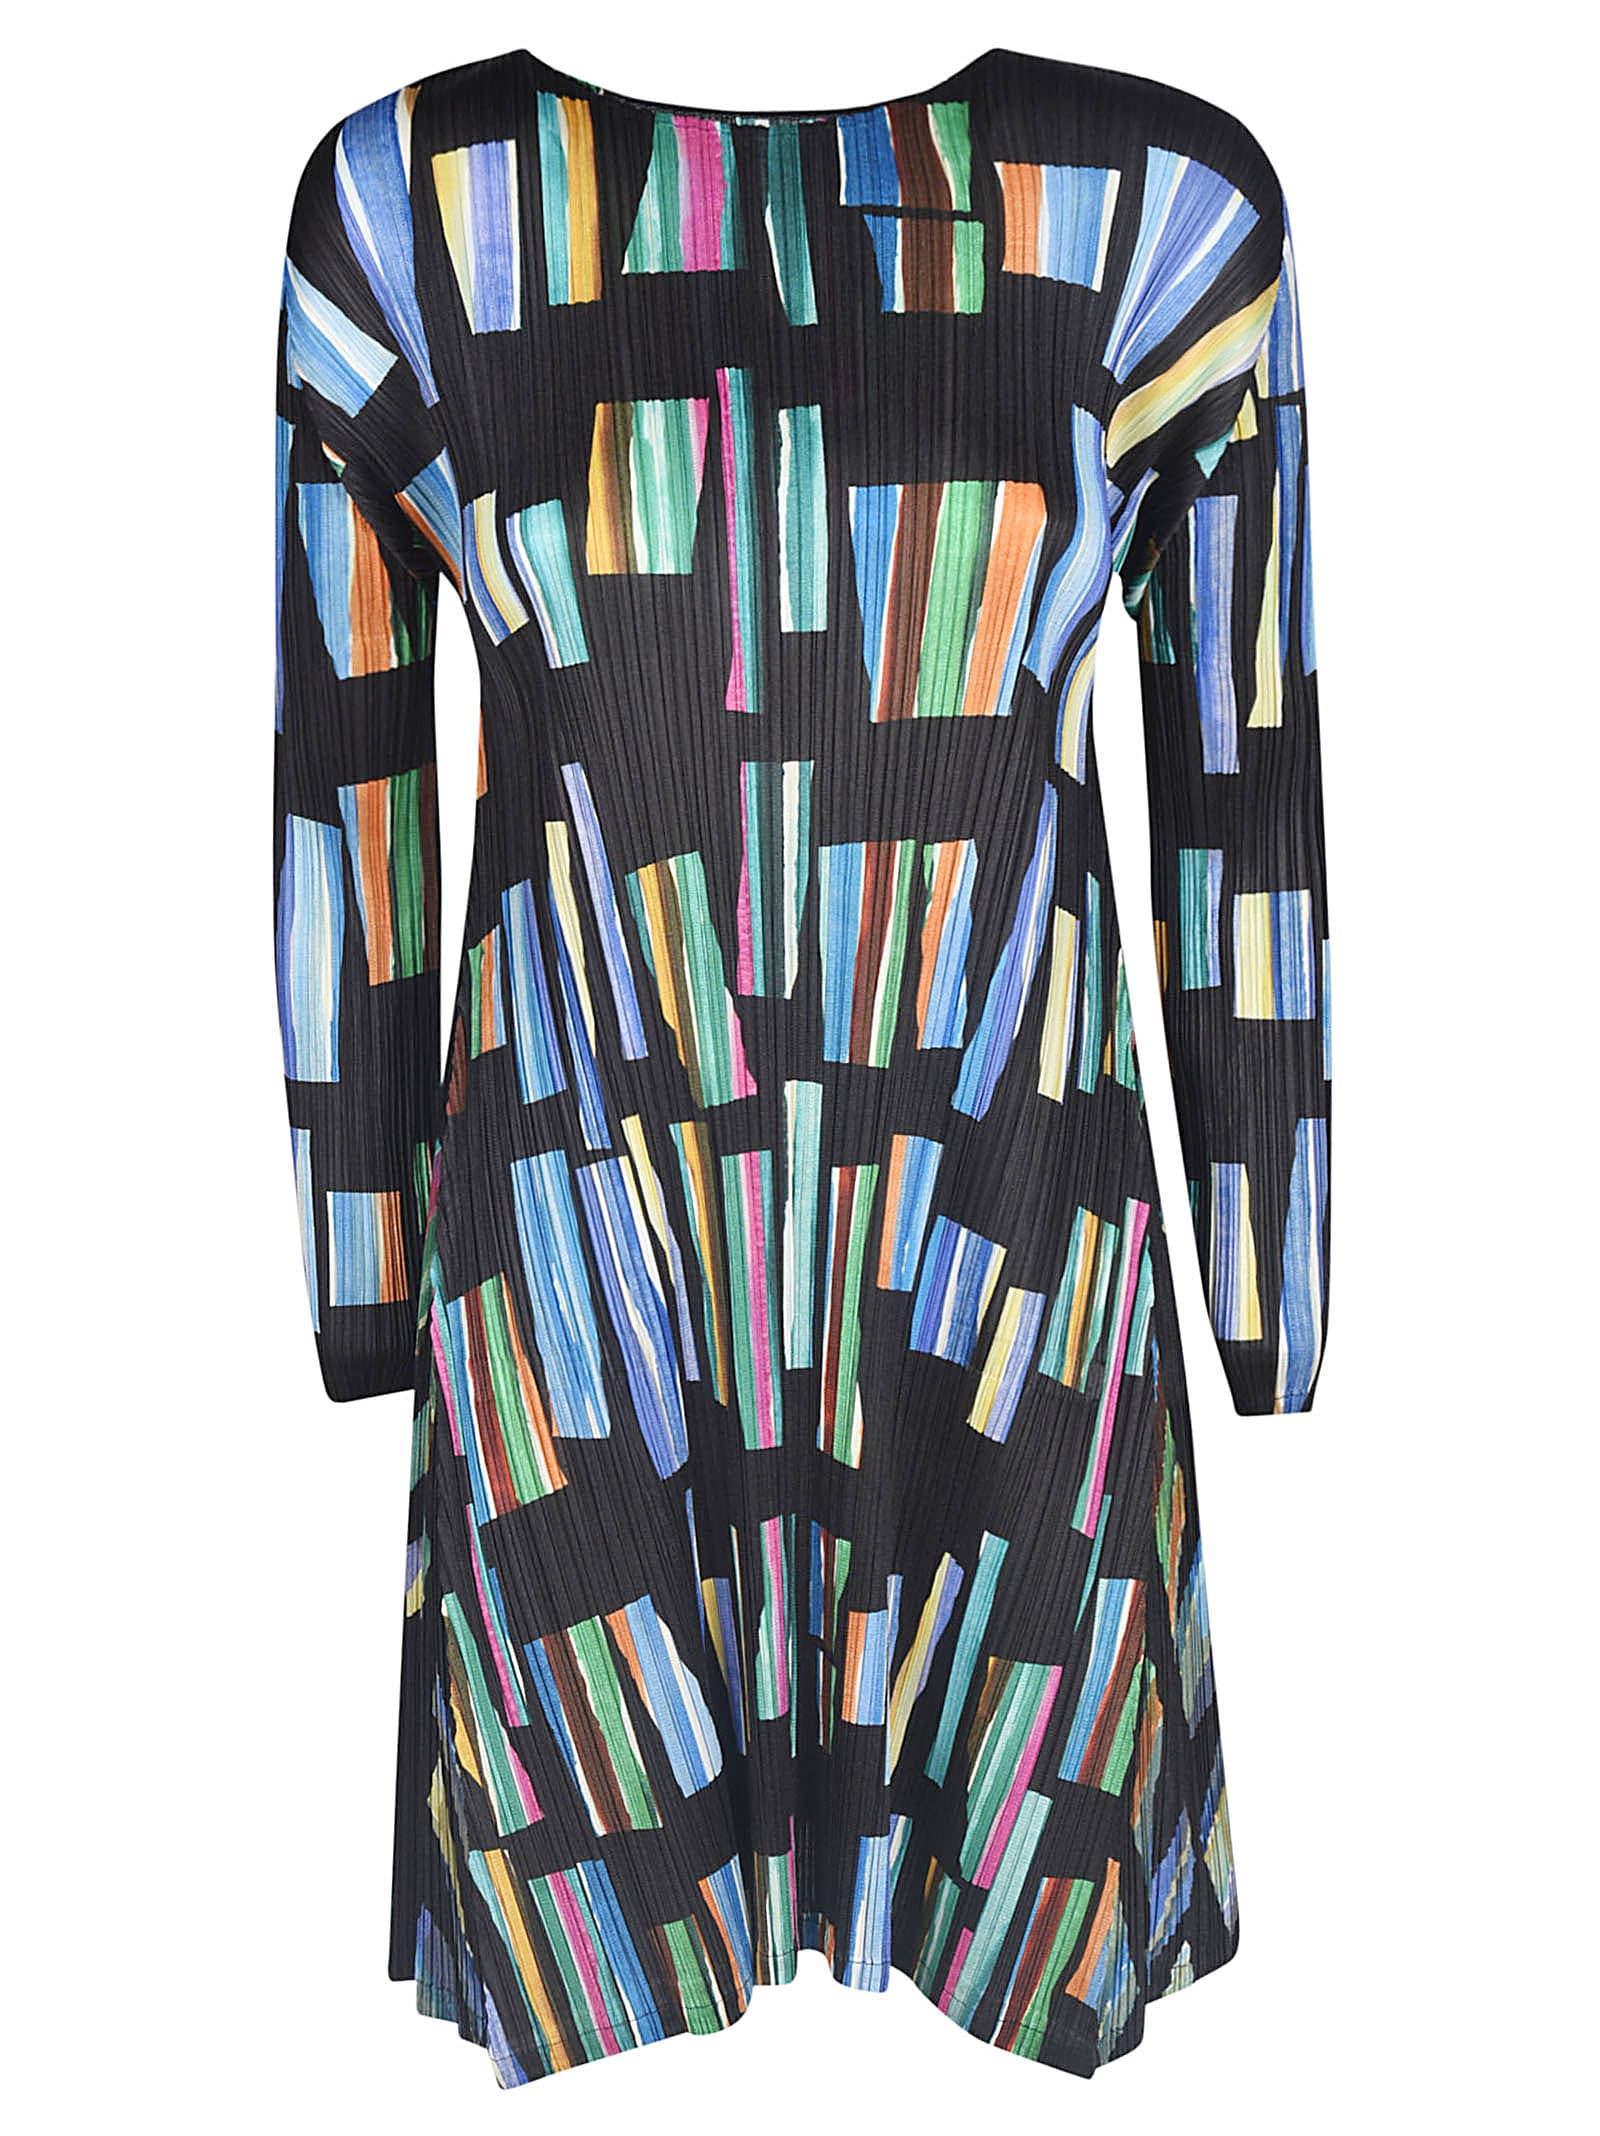 Buy Pleats Please Issey Miyake Hopscotch Colors Dress online, shop Pleats Please Issey Miyake with free shipping